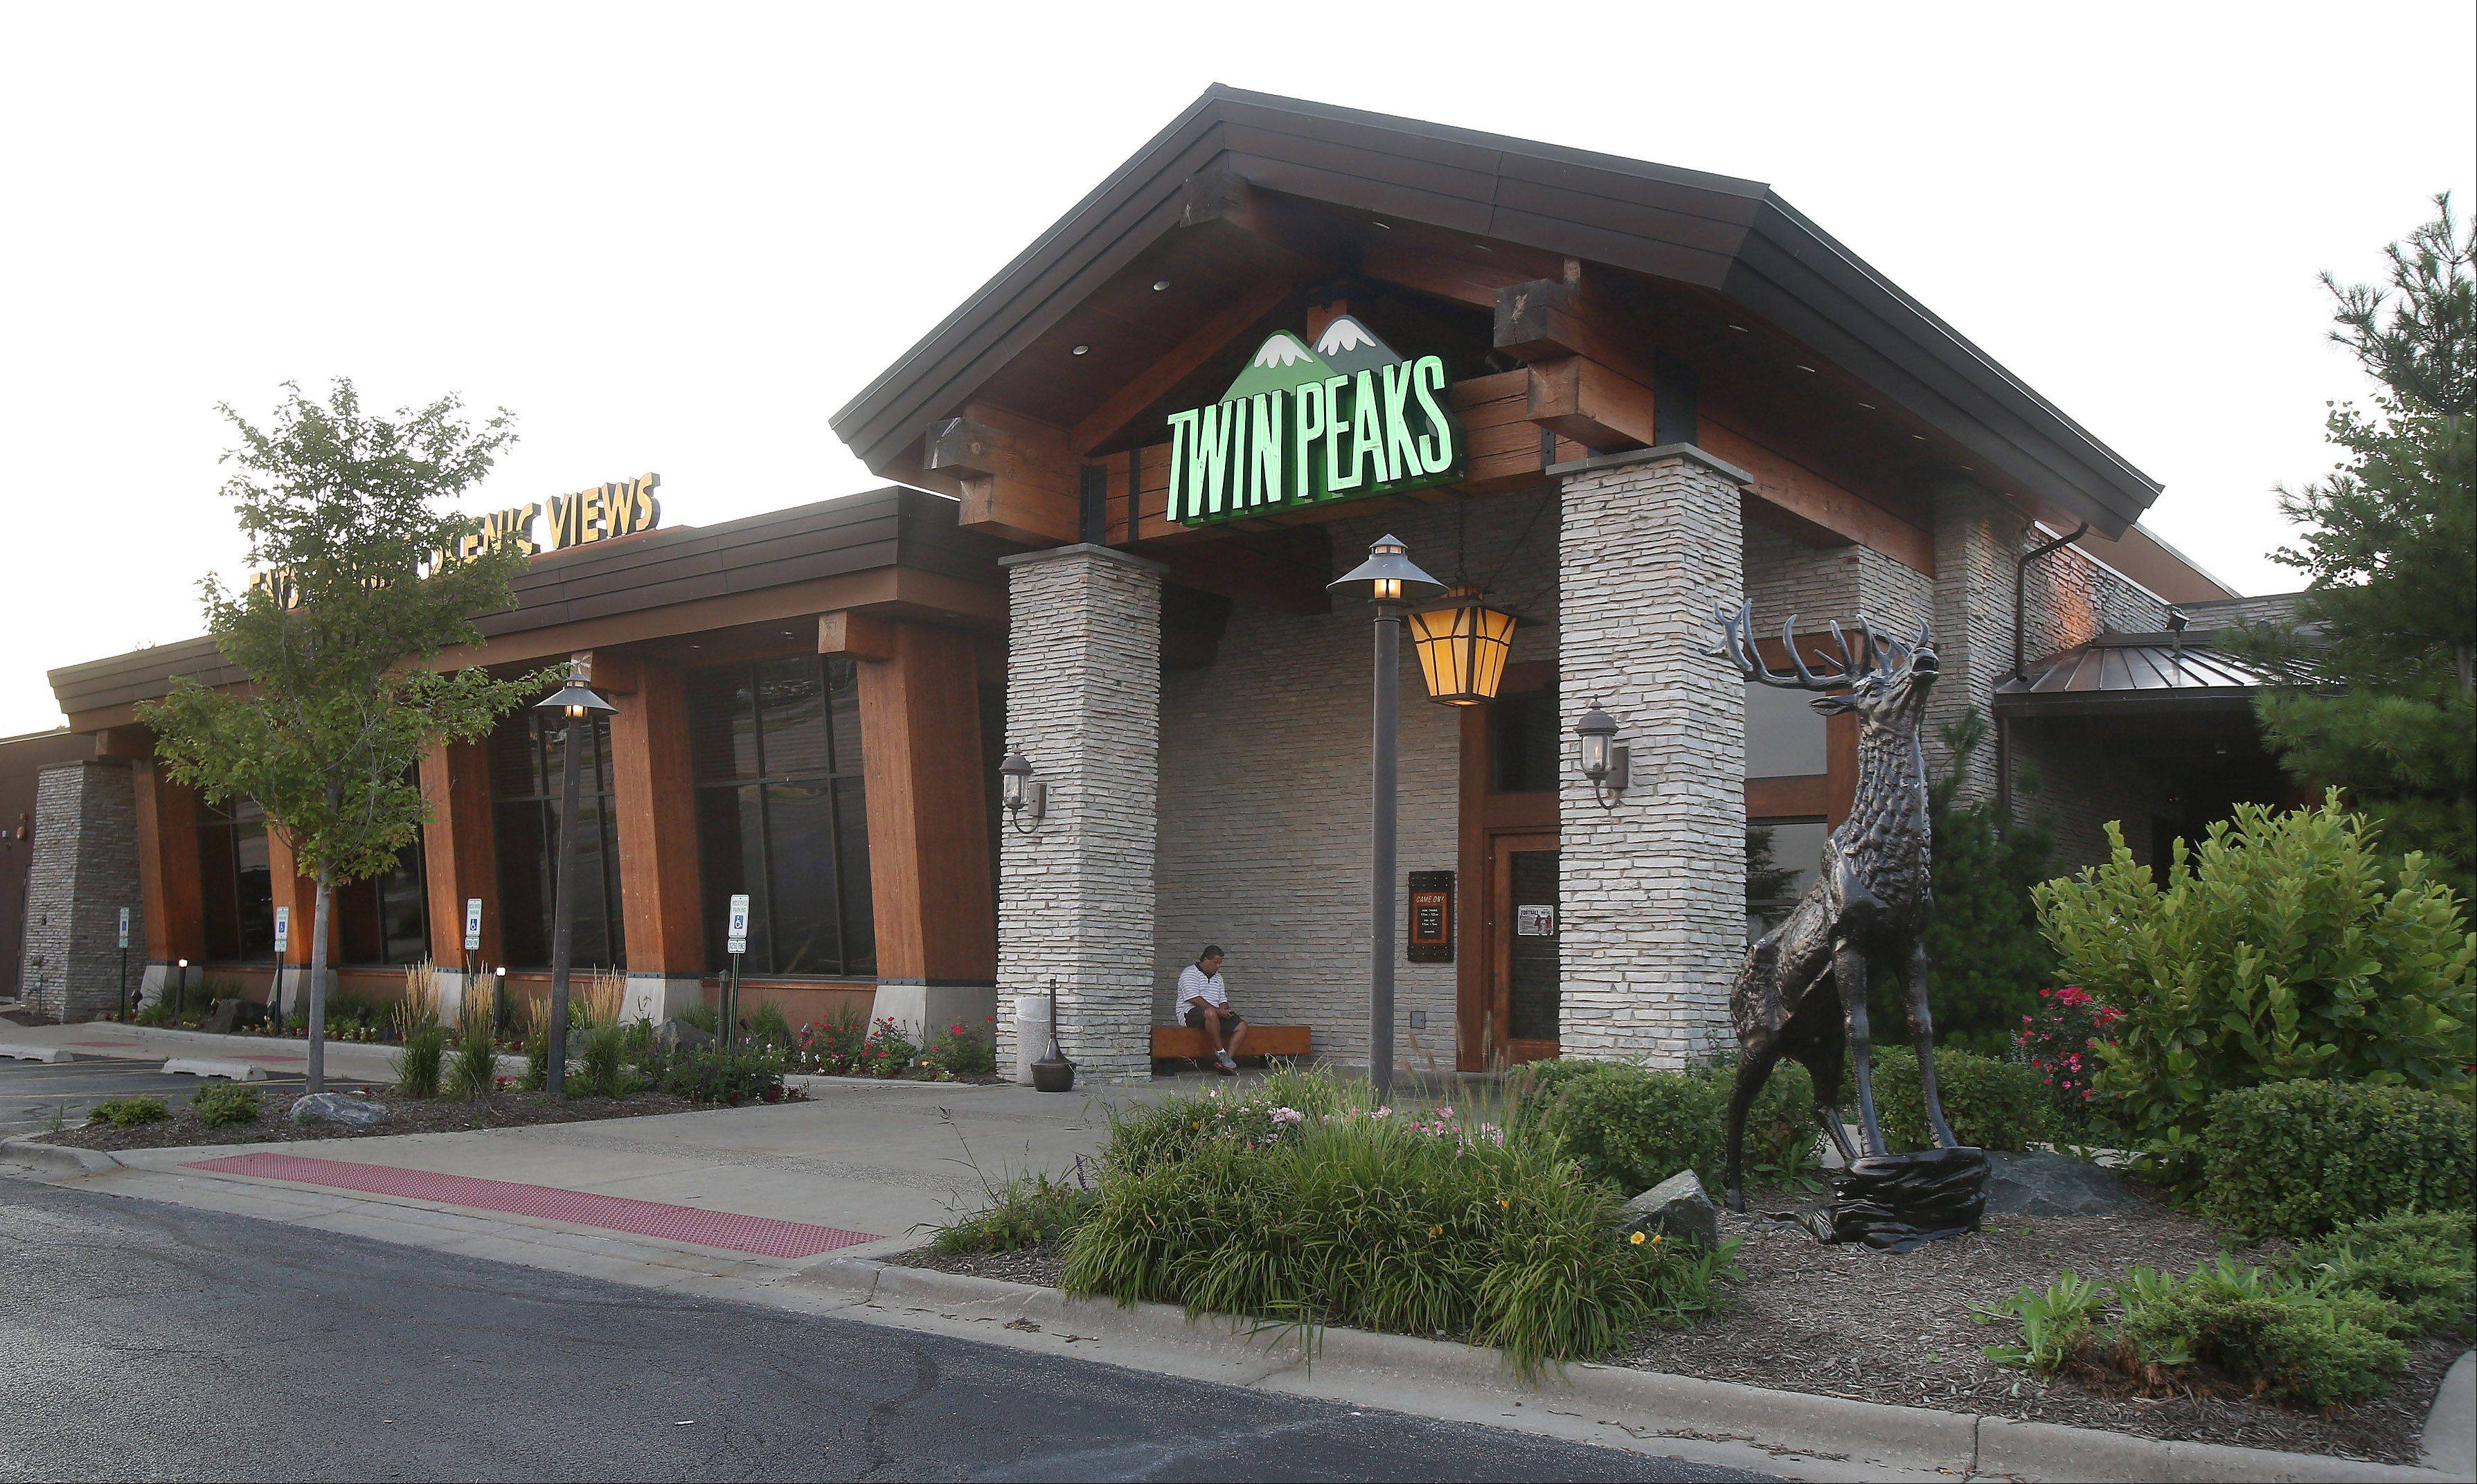 Twin Peaks opened its first Illinois location in Wheeling.